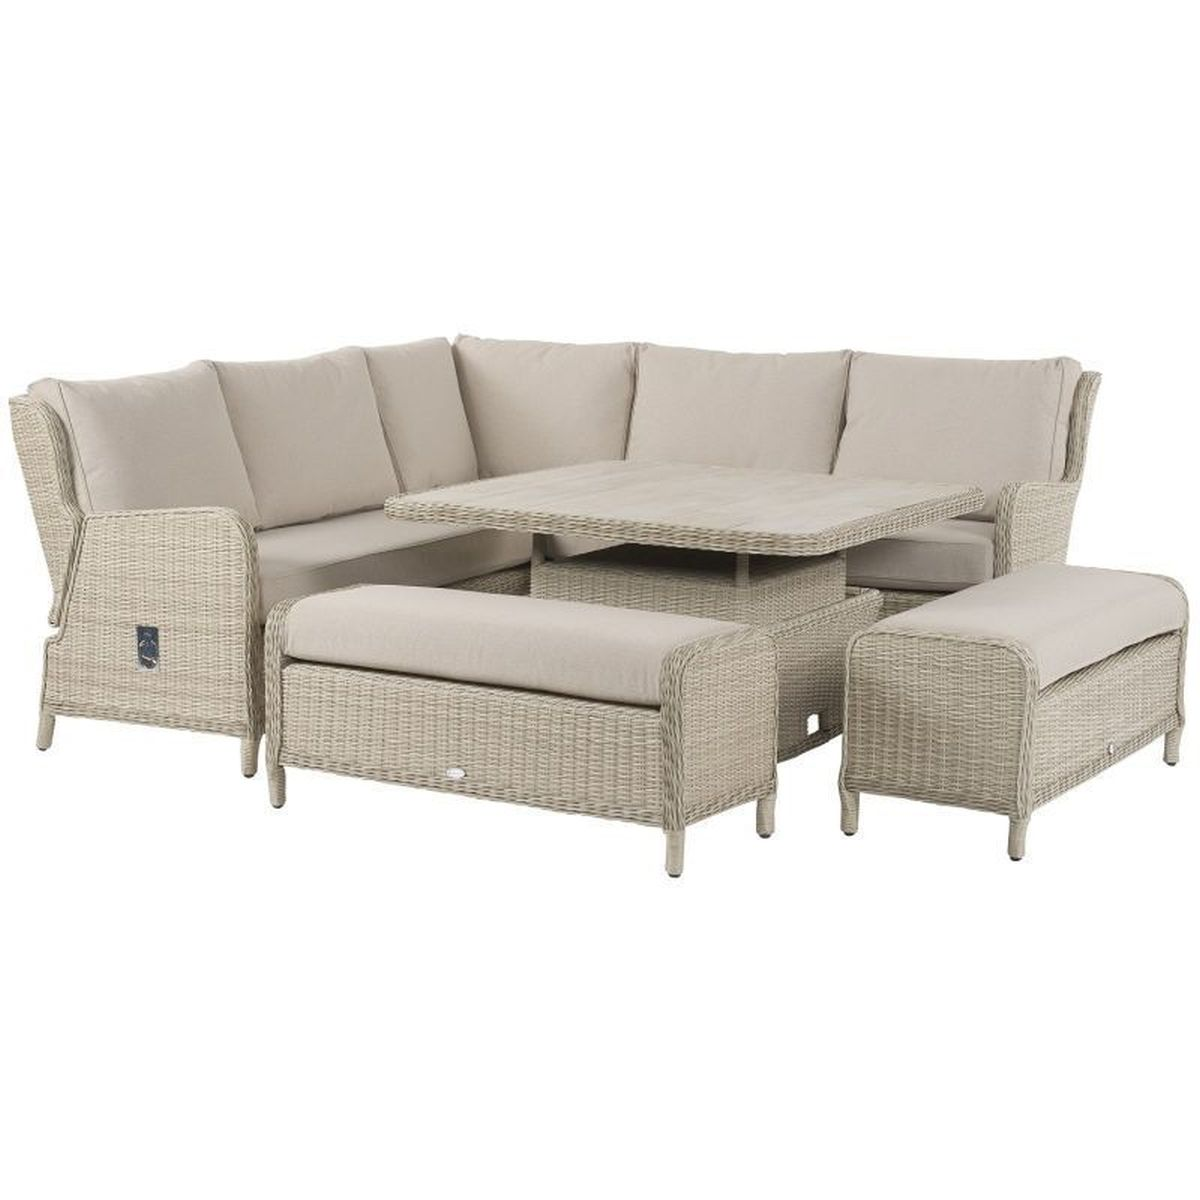 Bramblecrest Chedworth Reclining Modular Dining Set | Local Delivery Only